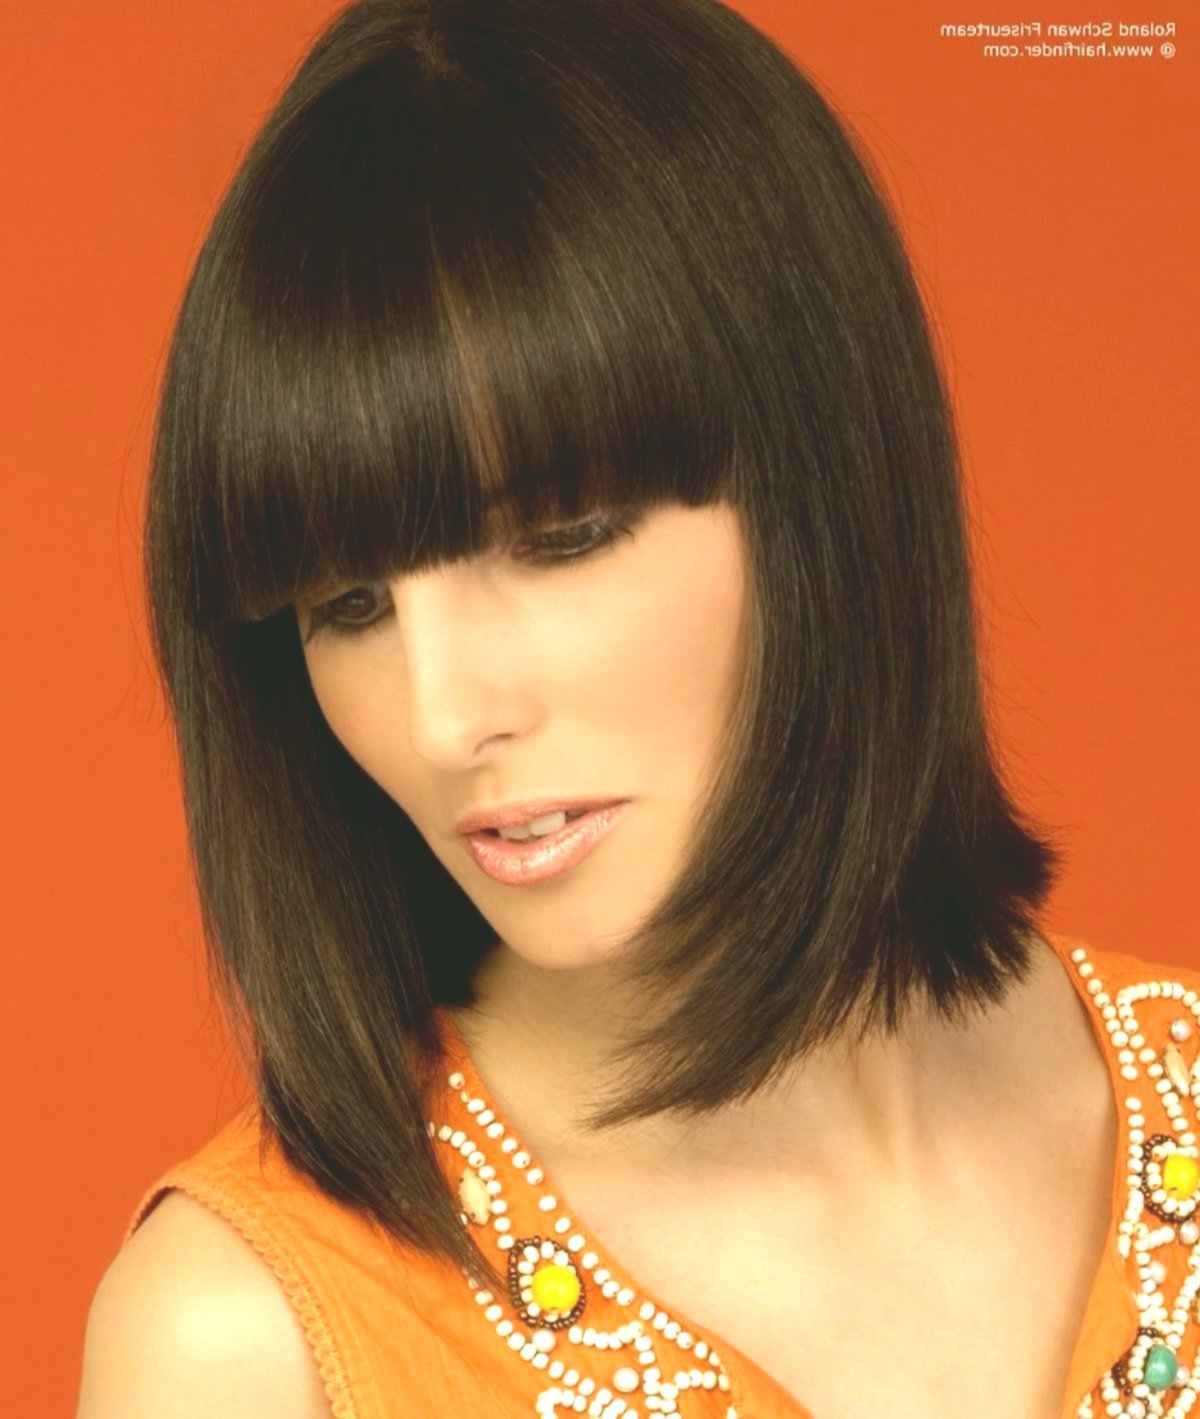 elegant fashionable hairstyles photo modern image Fashionable hairstyles construction